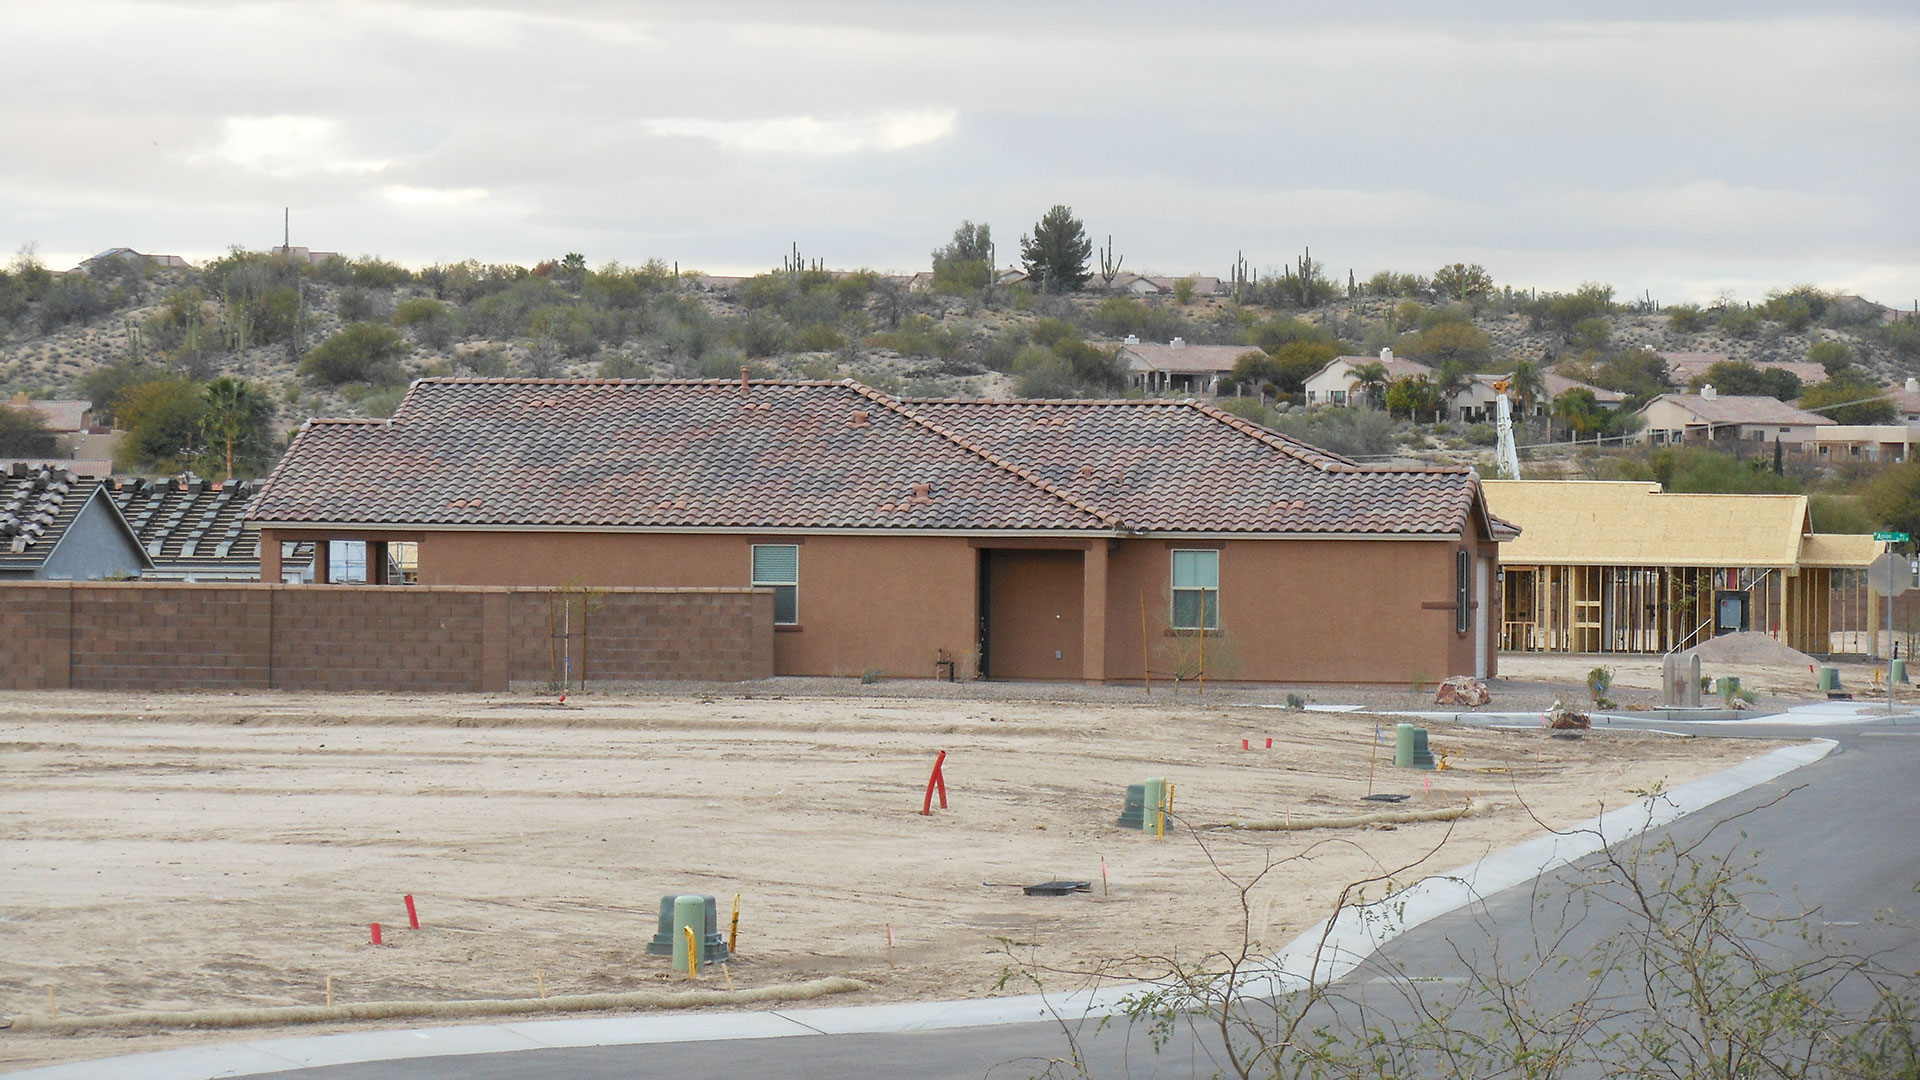 New homes and new home construction on Tucson's northwest side. February 2018